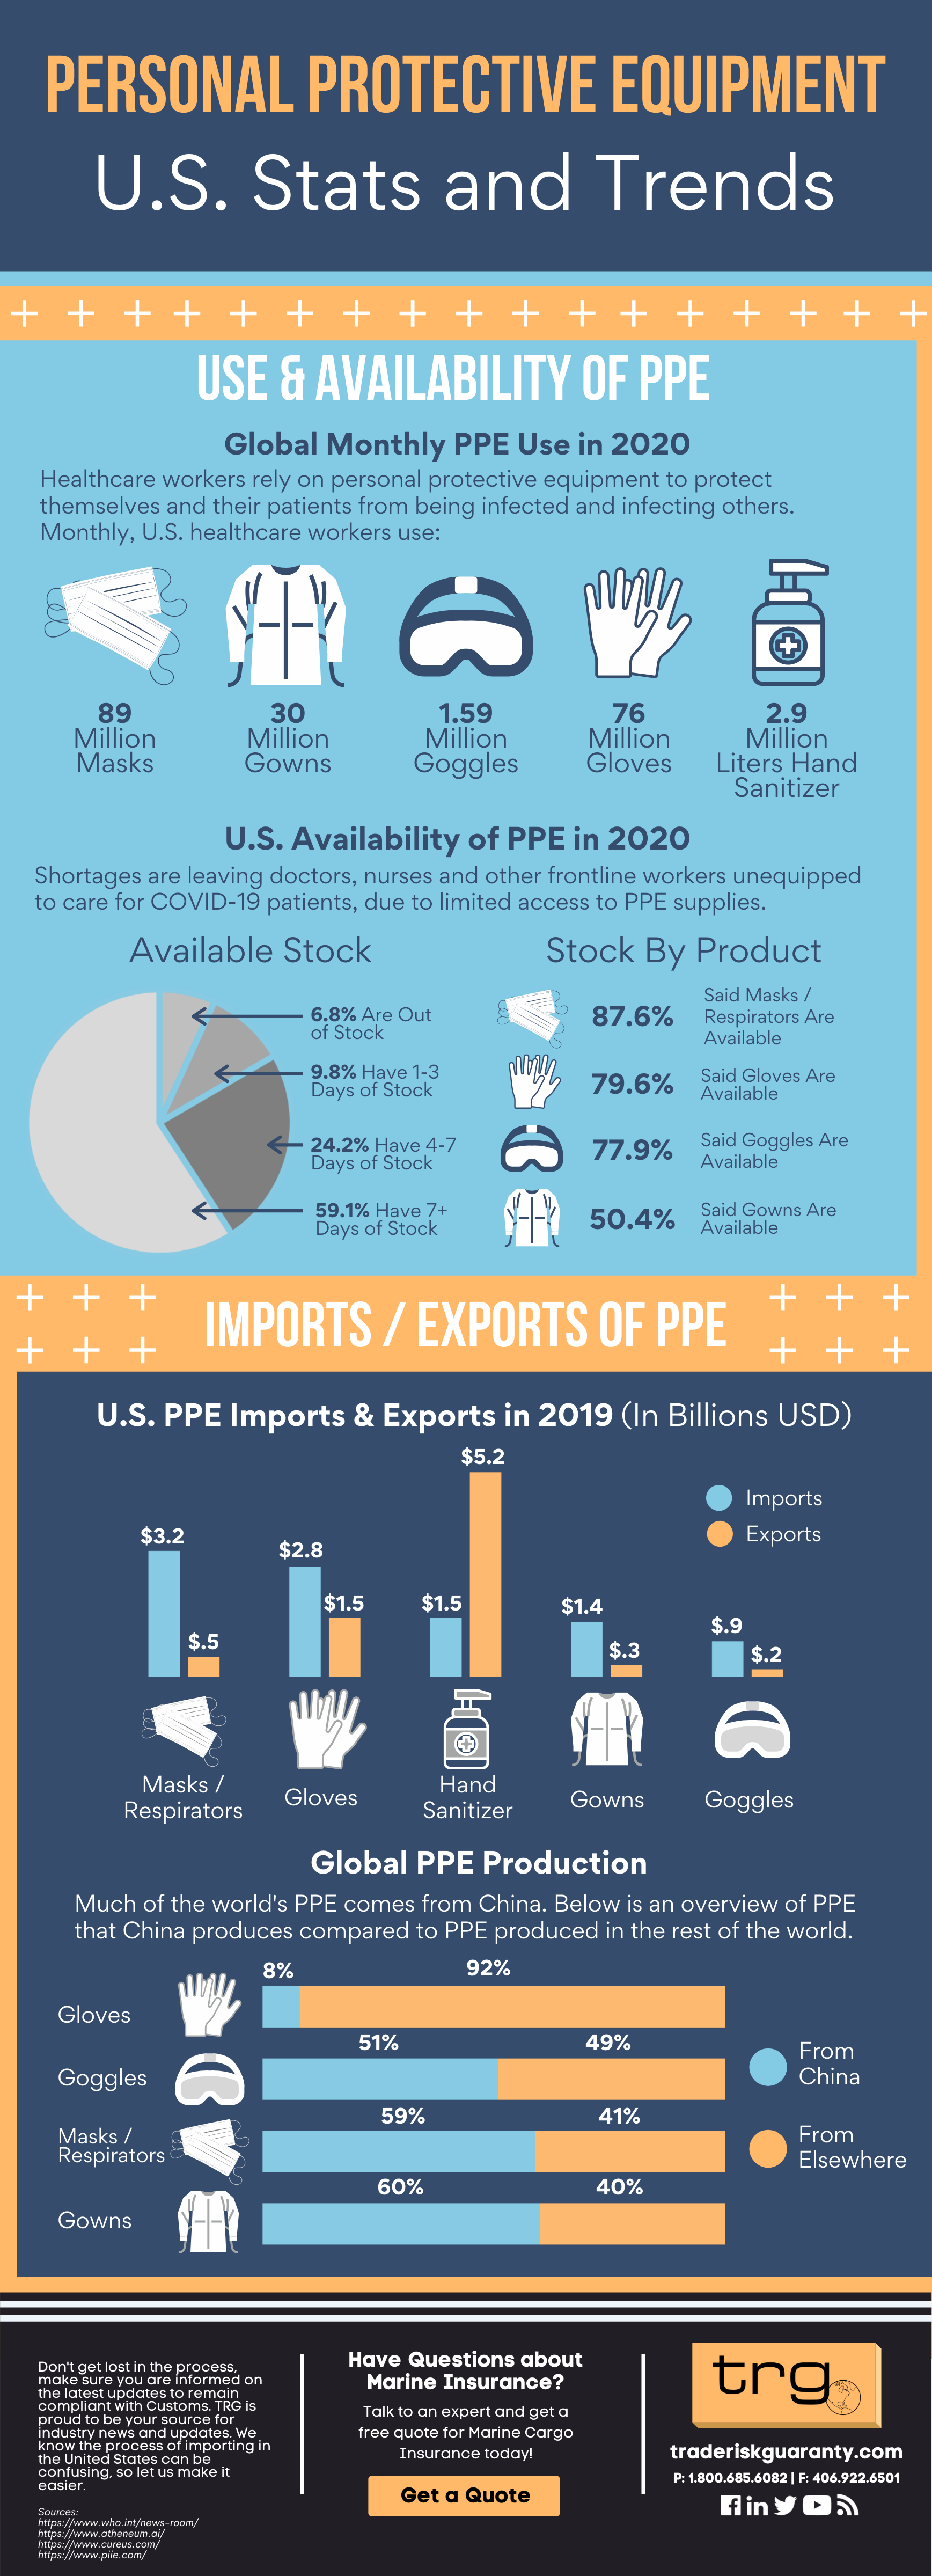 Personal Protective Equipment U.S. Stats and Trends